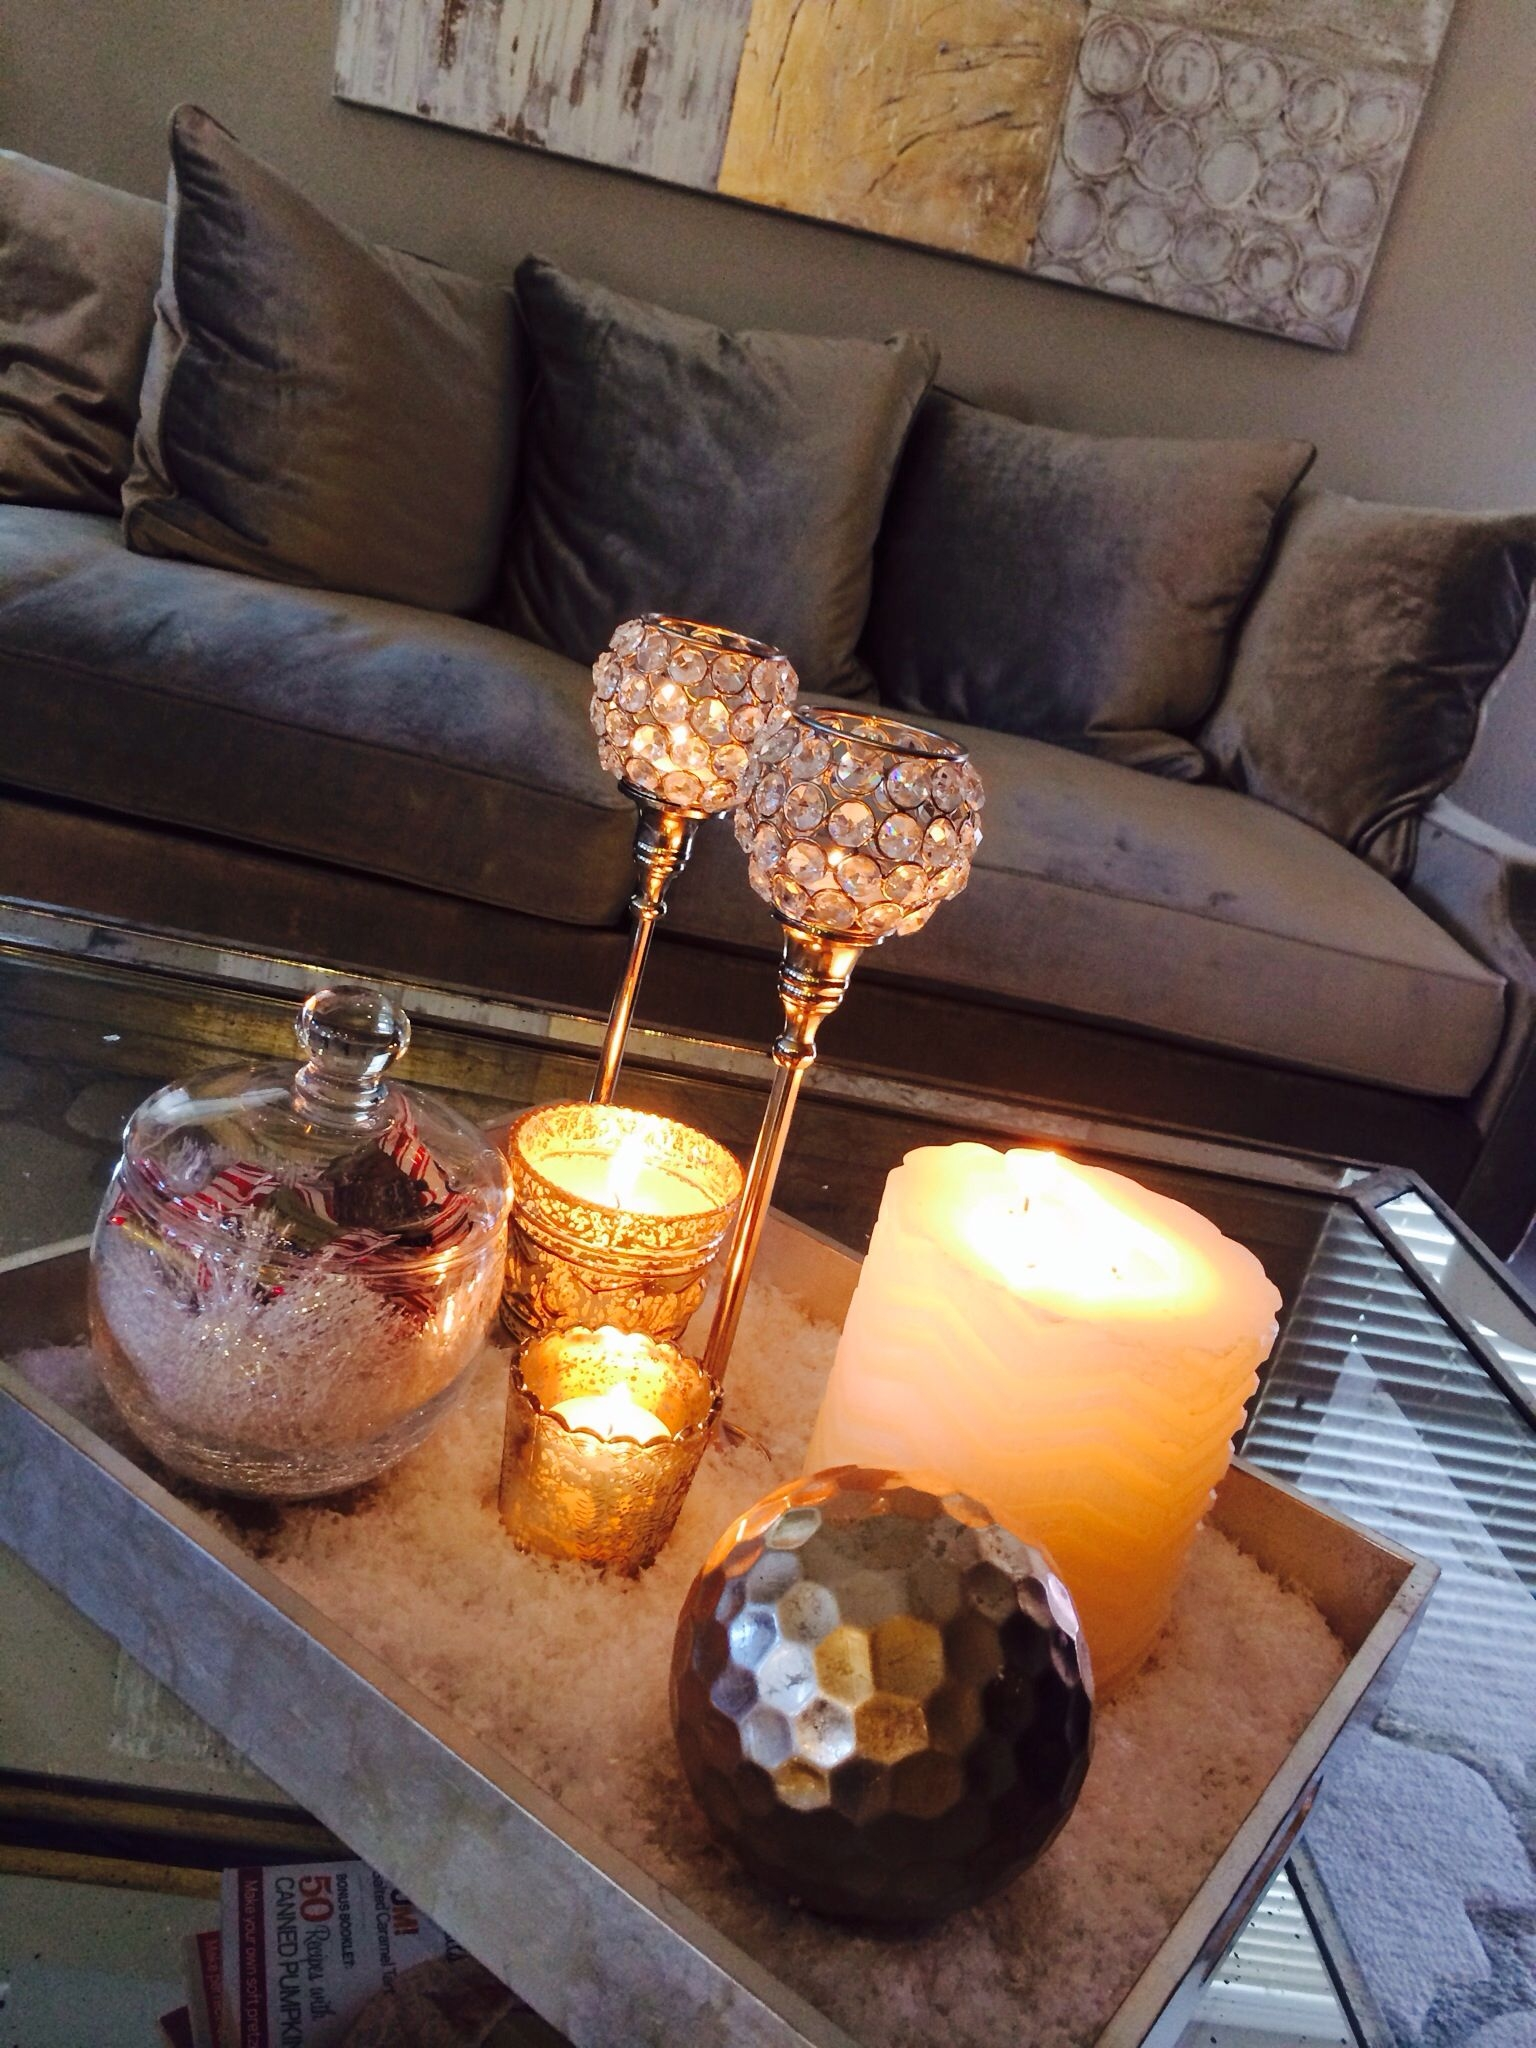 Stupendous Living Room Table Centerpieces On Lovely Christmas Decorations Coffee Table On Living Room Table Centerpieces